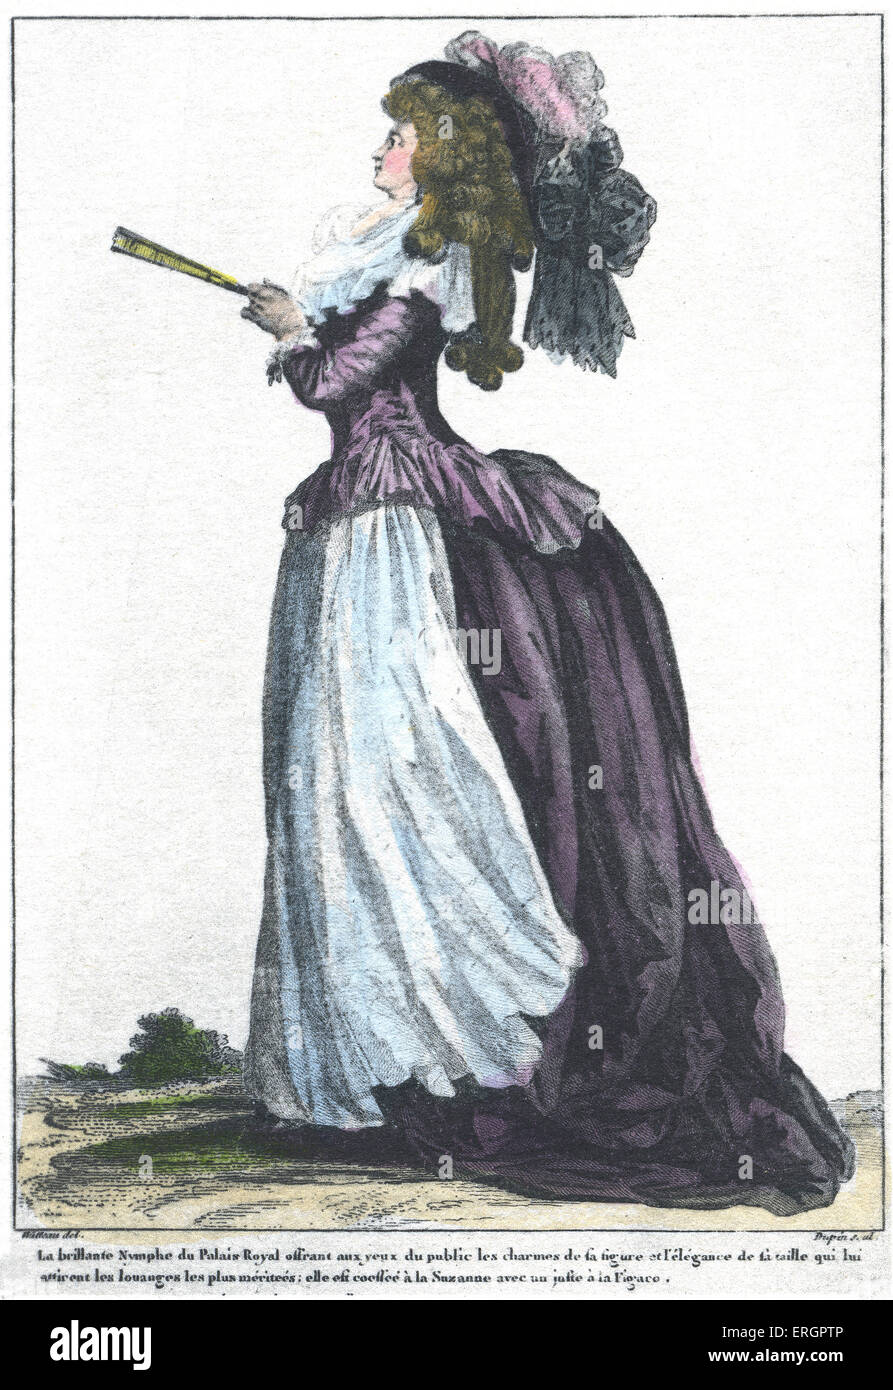 Courtesan of the Palace of Louis XVI. Side view of woman in French court dress from 1781,  wearing a full skirt - Stock Image